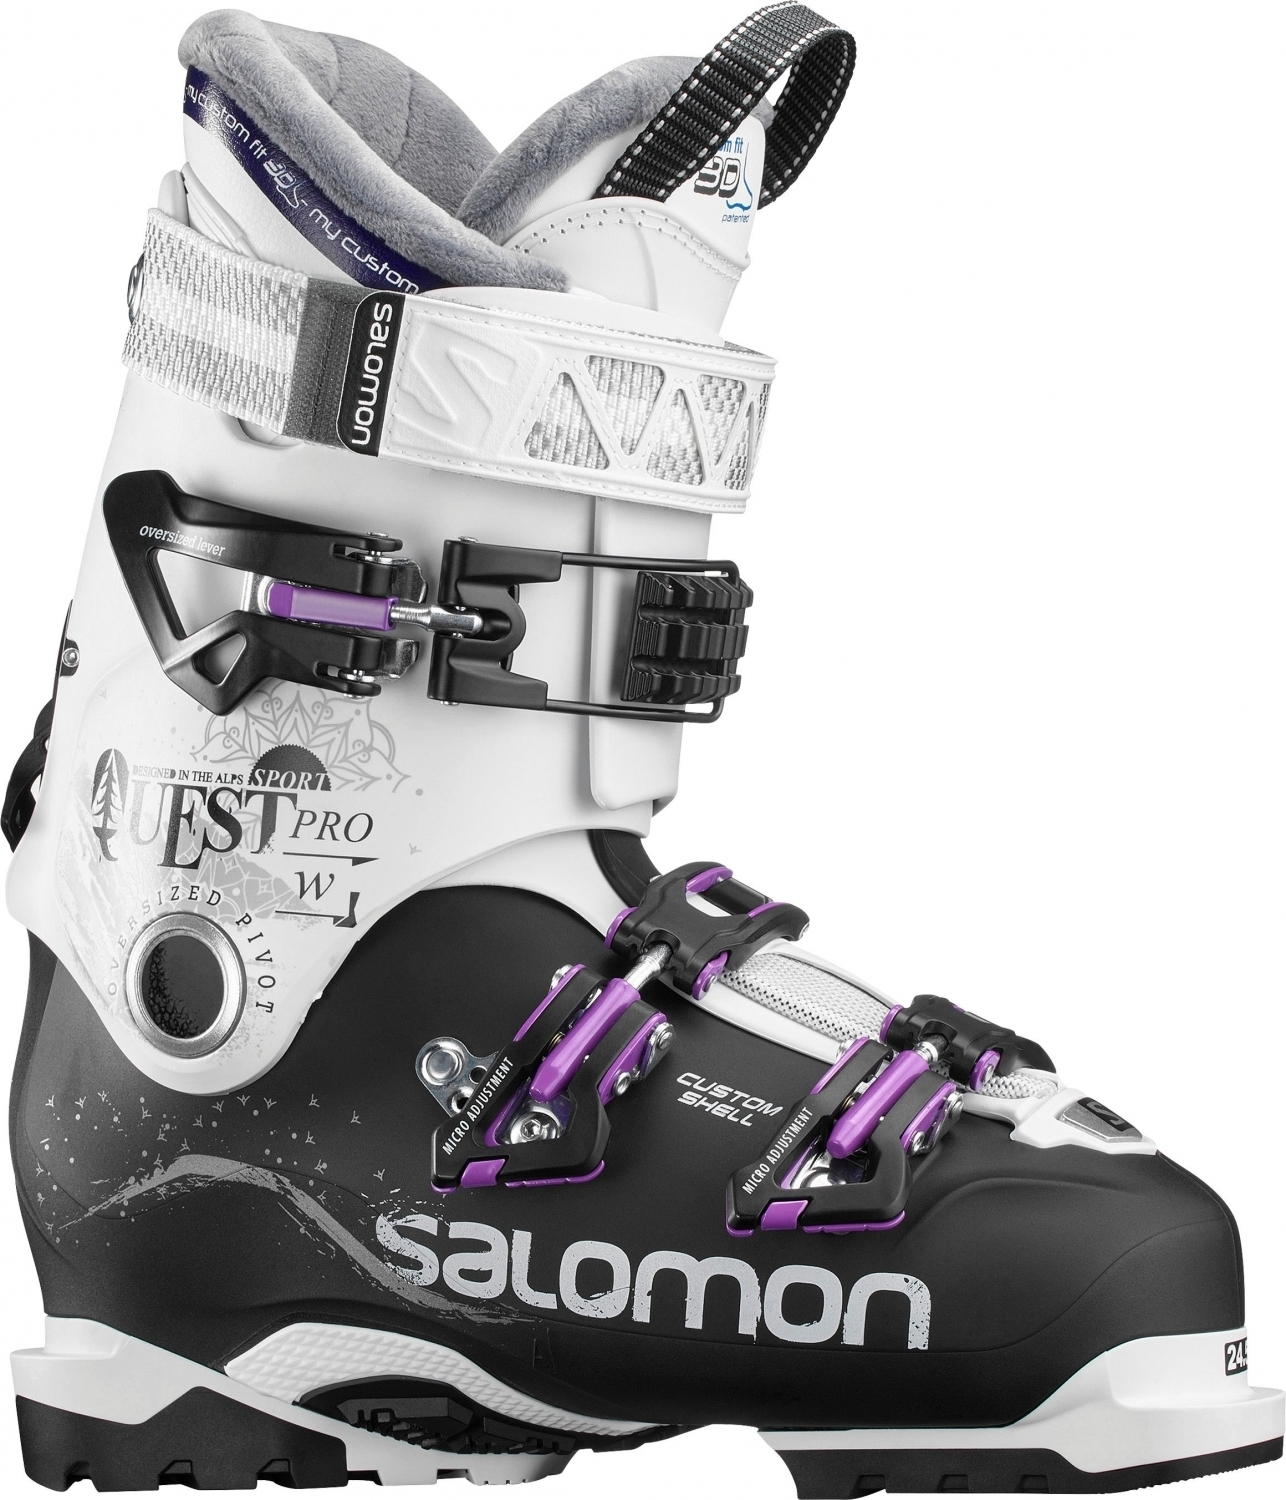 Salomon INTERSPORT Forster